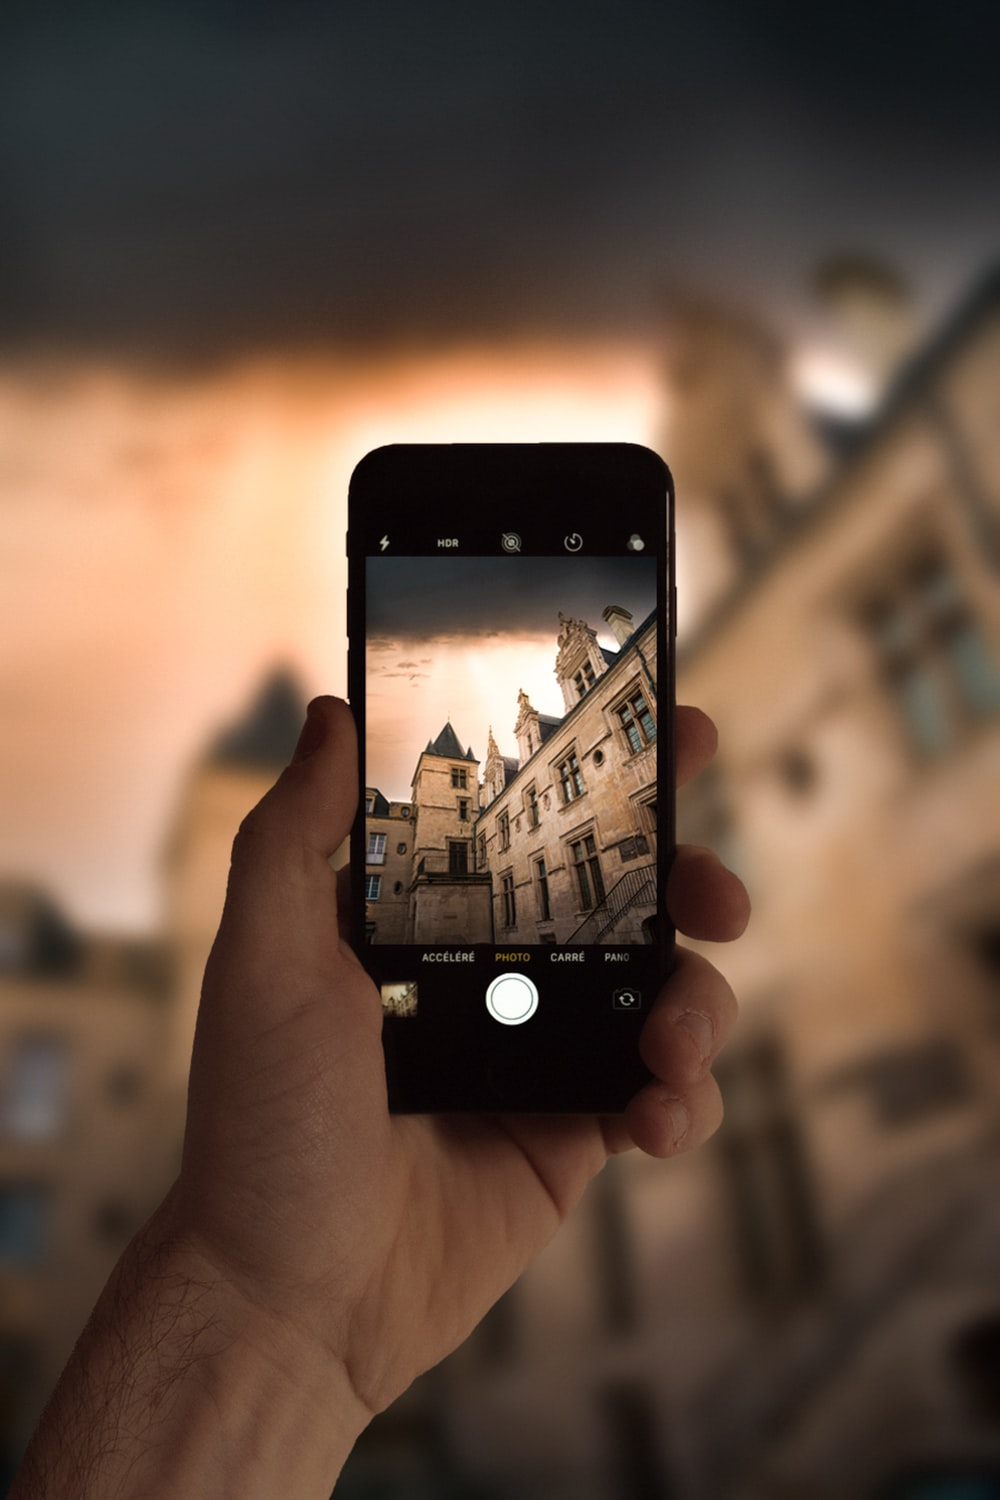 person holding black iphone 4 taking photo of city buildings during daytime